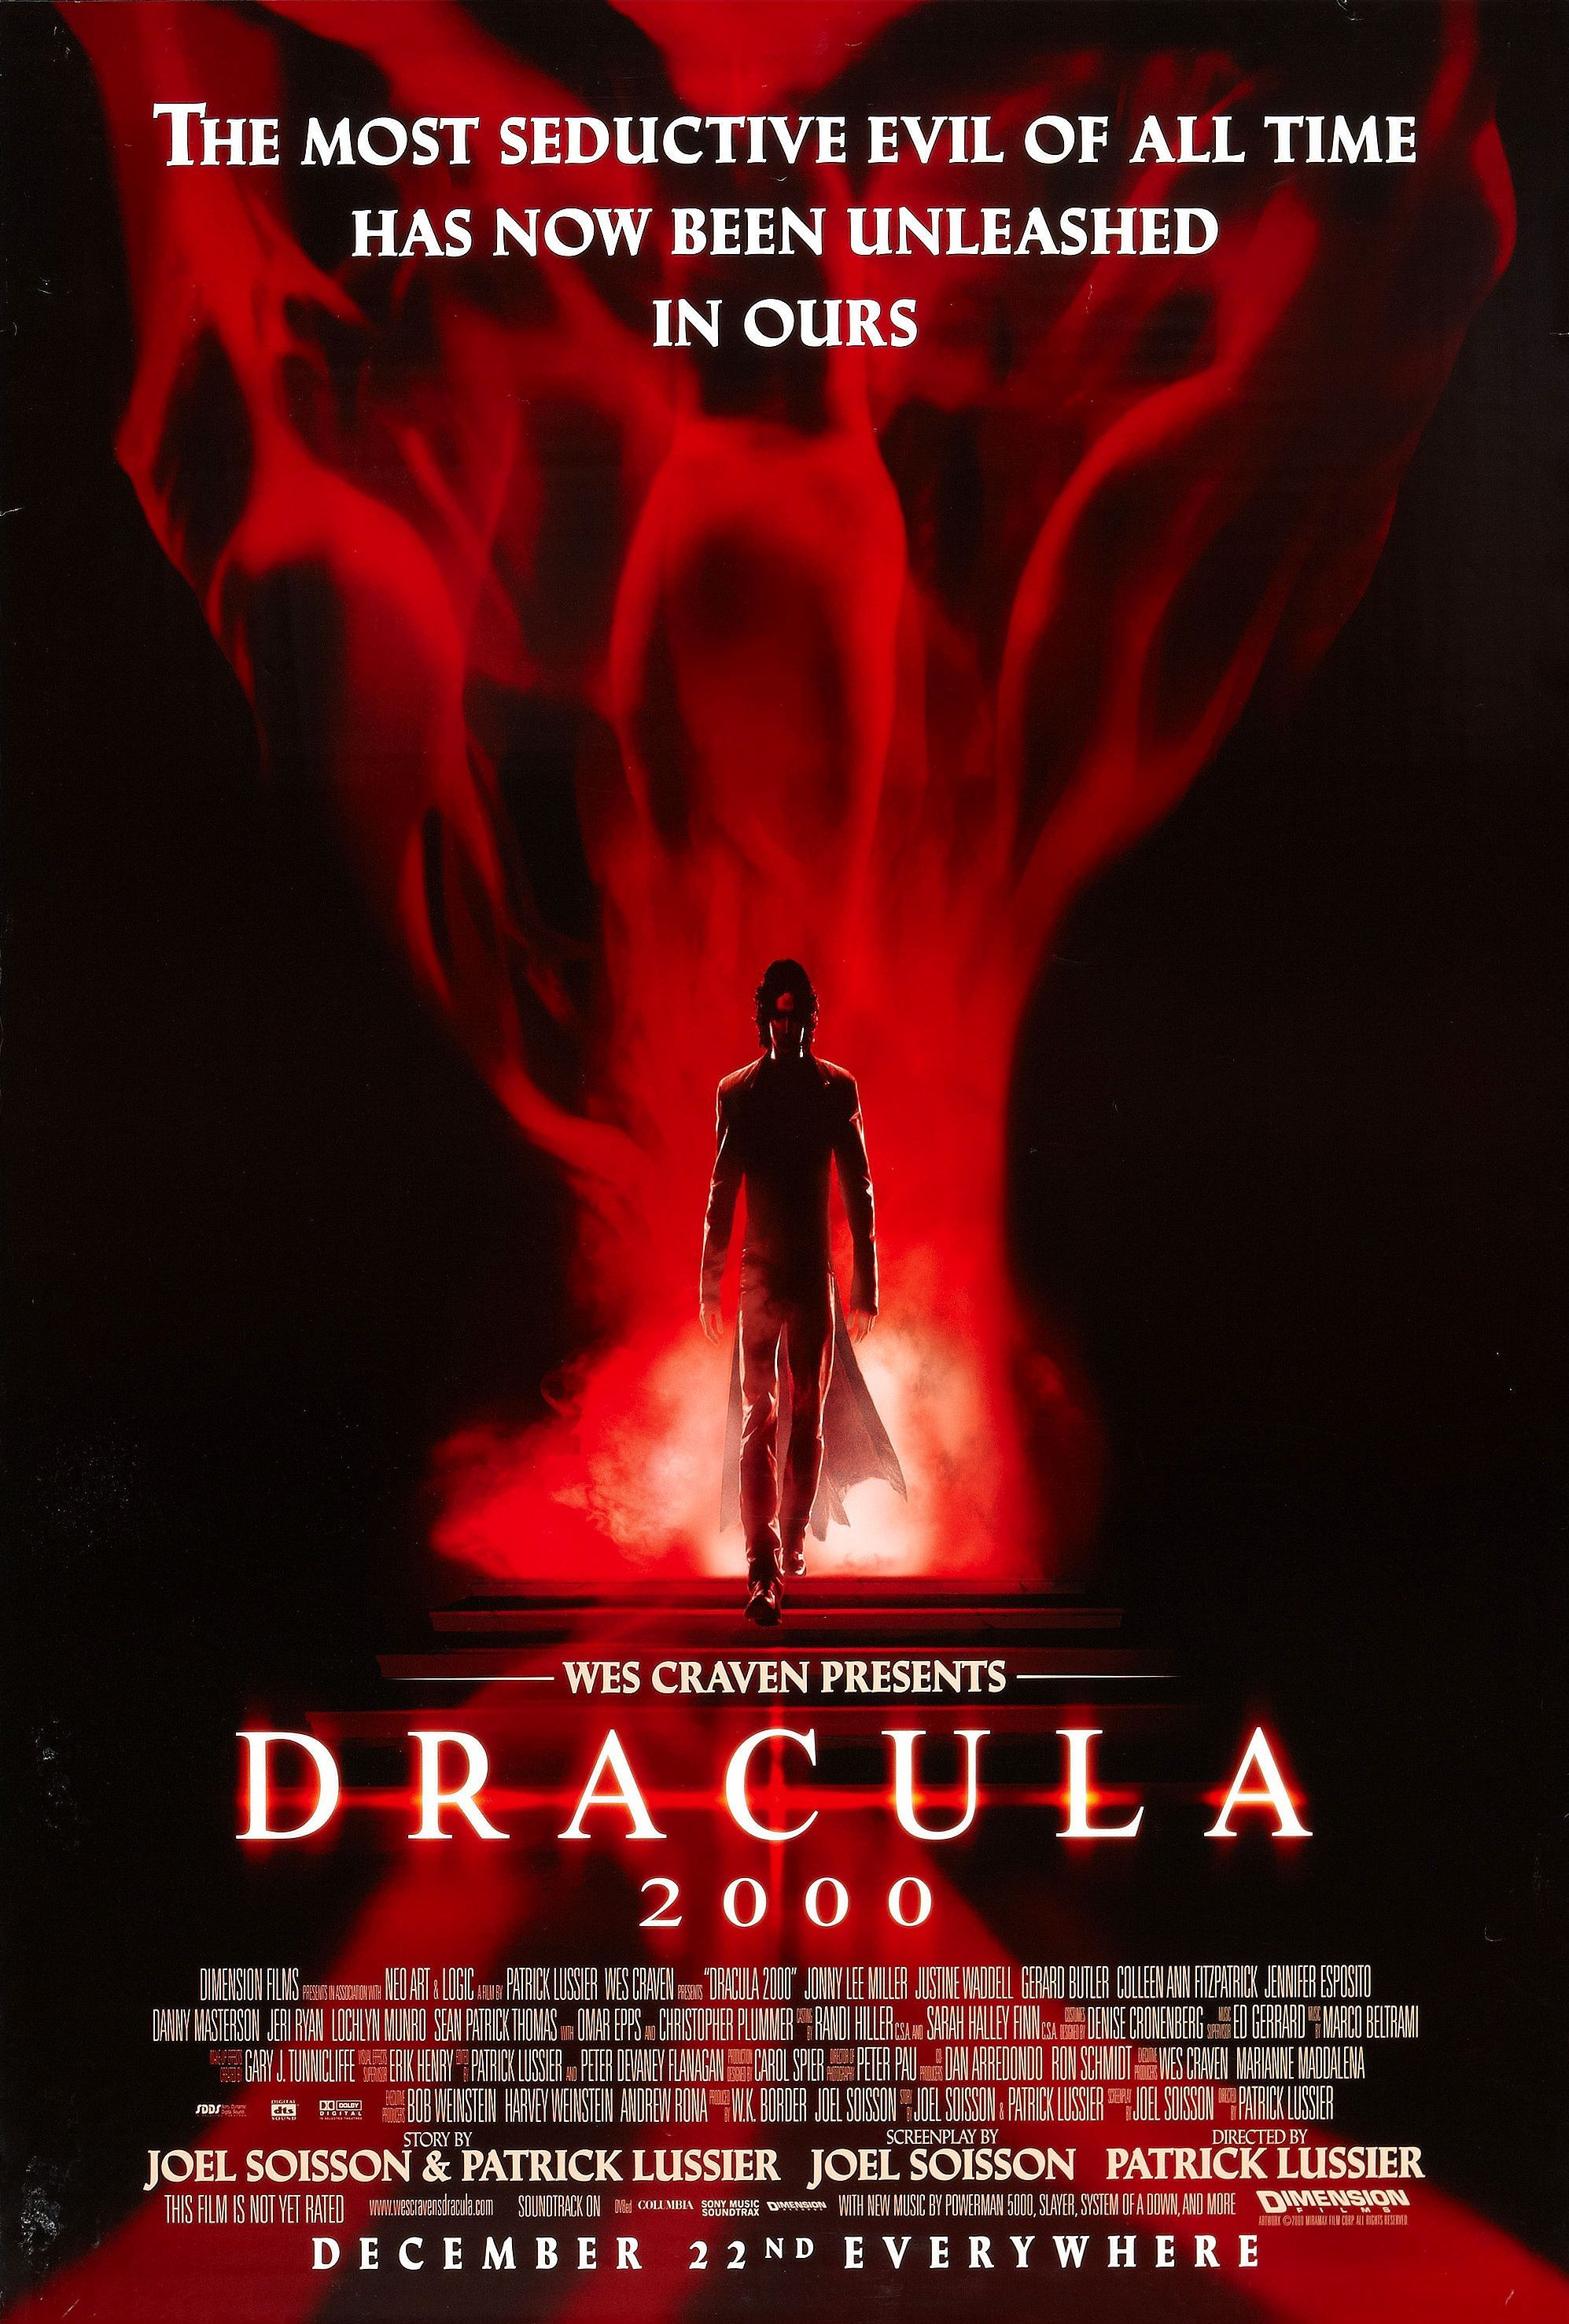 Dracula 2000 Is The Chronicle Of The Confrontation Between The